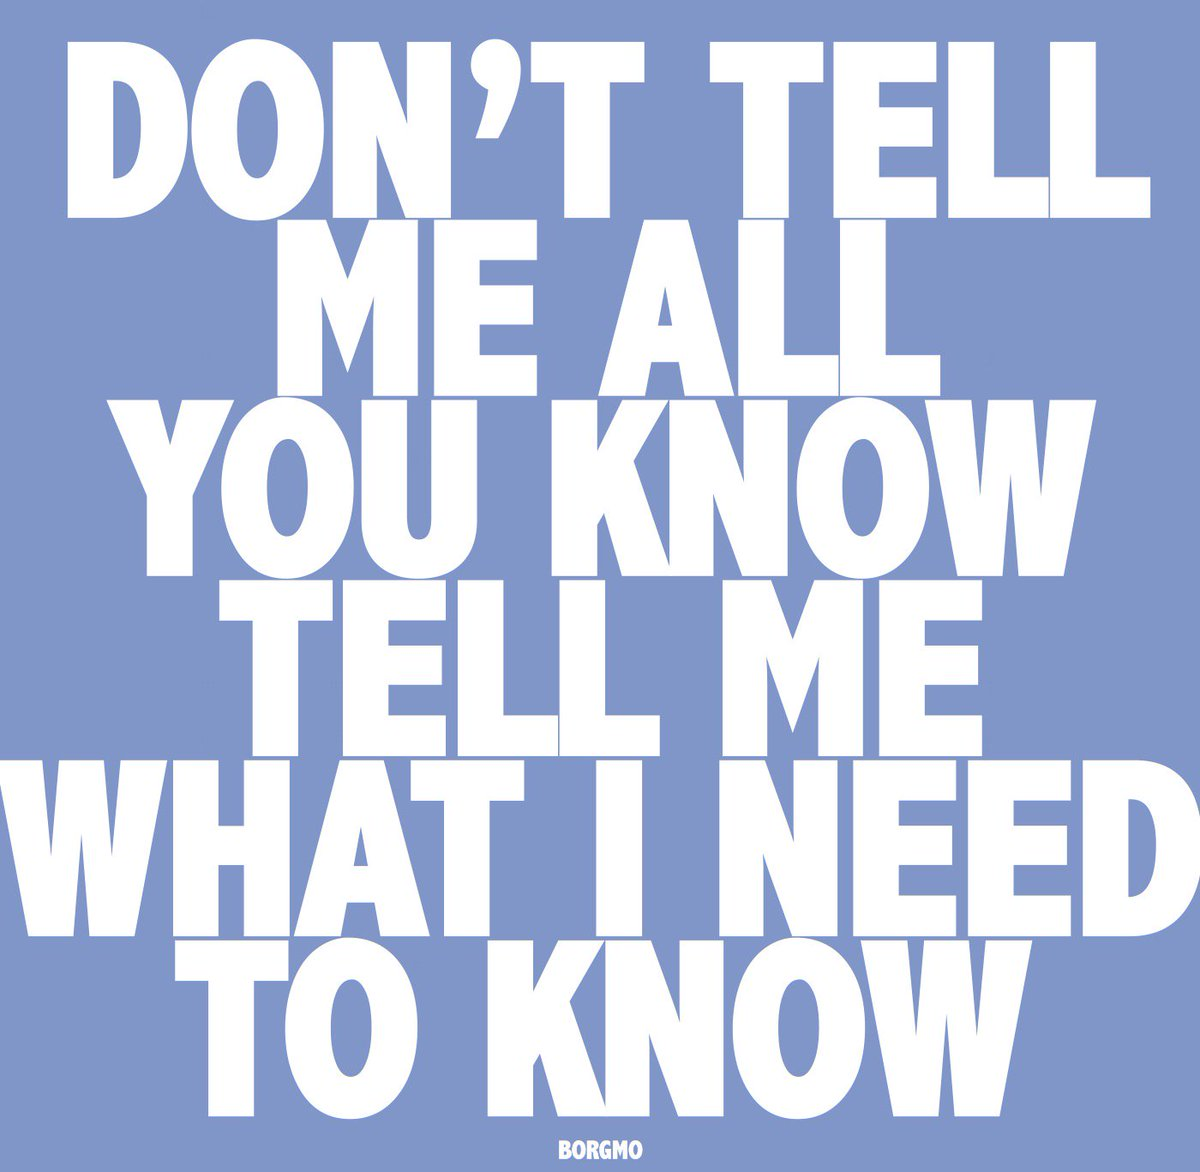 Tell me all you know about... :)?